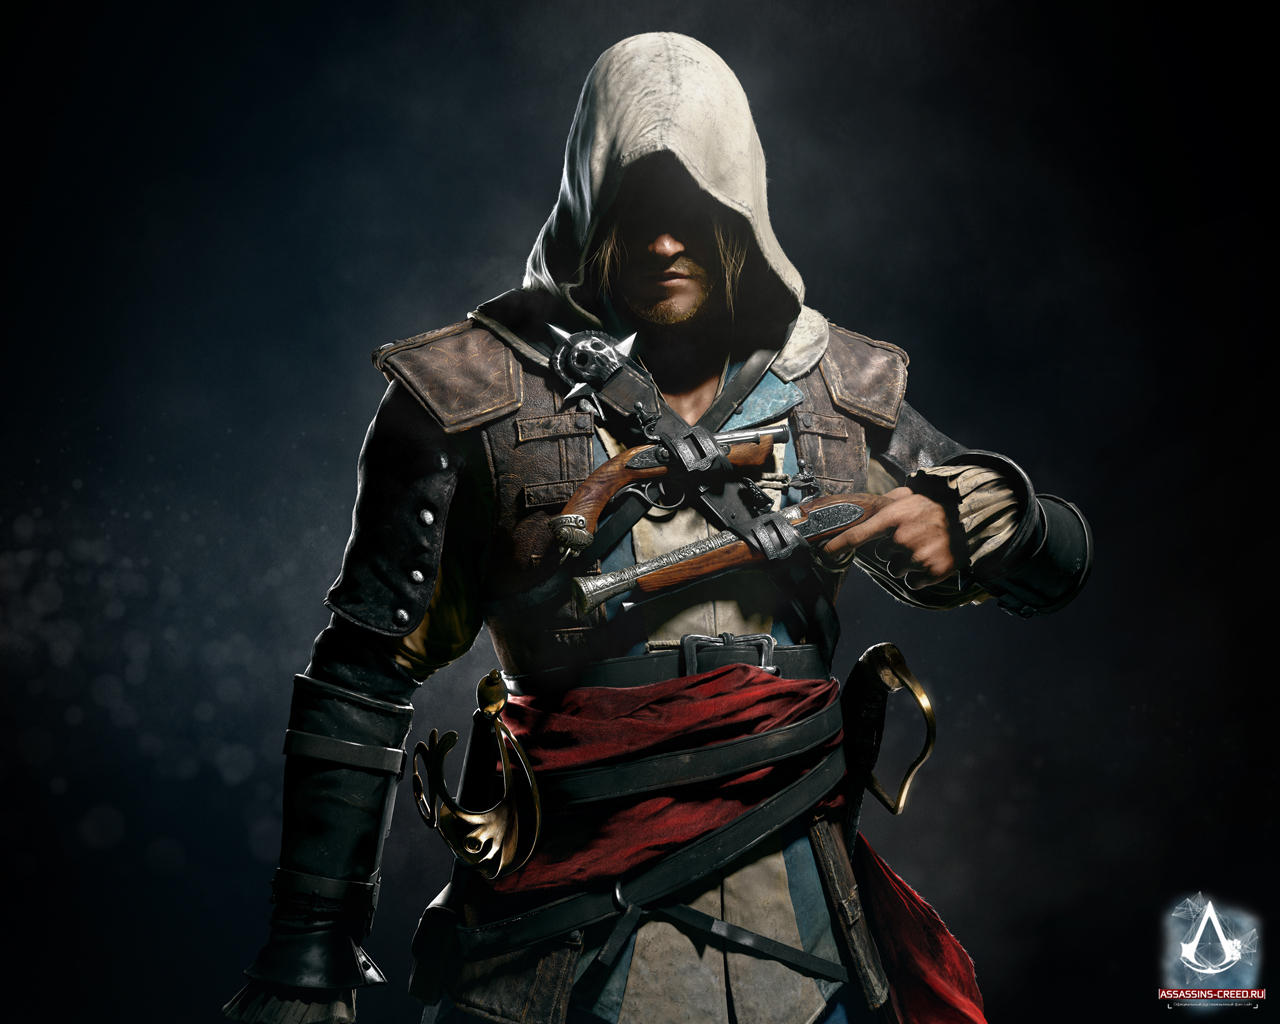 16208 download wallpaper Men, Assassin's Creed, Games screensavers and pictures for free